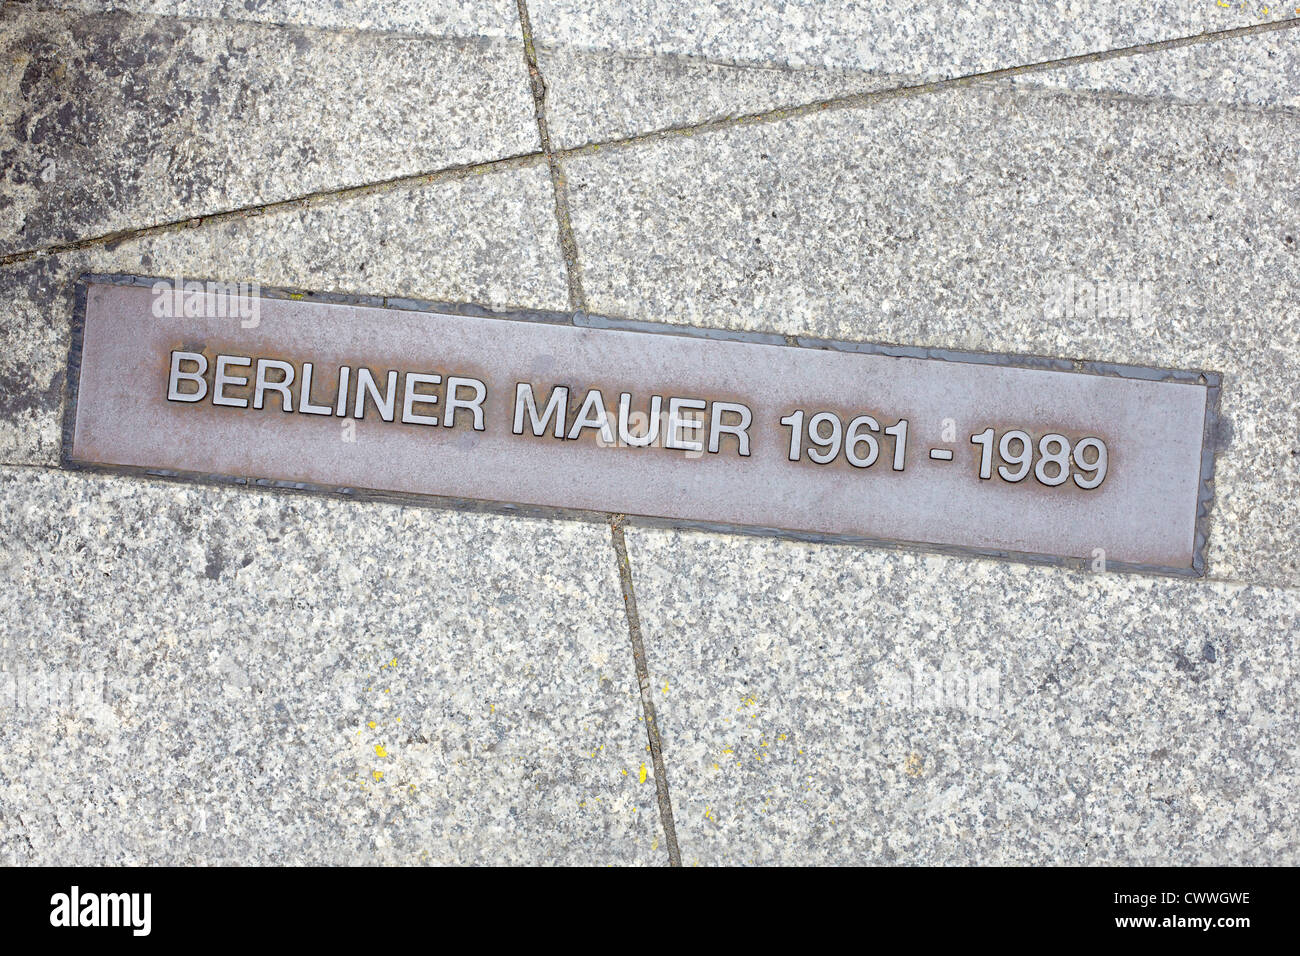 Berlin wall sign on the street, Berliner Mauer - Stock Image